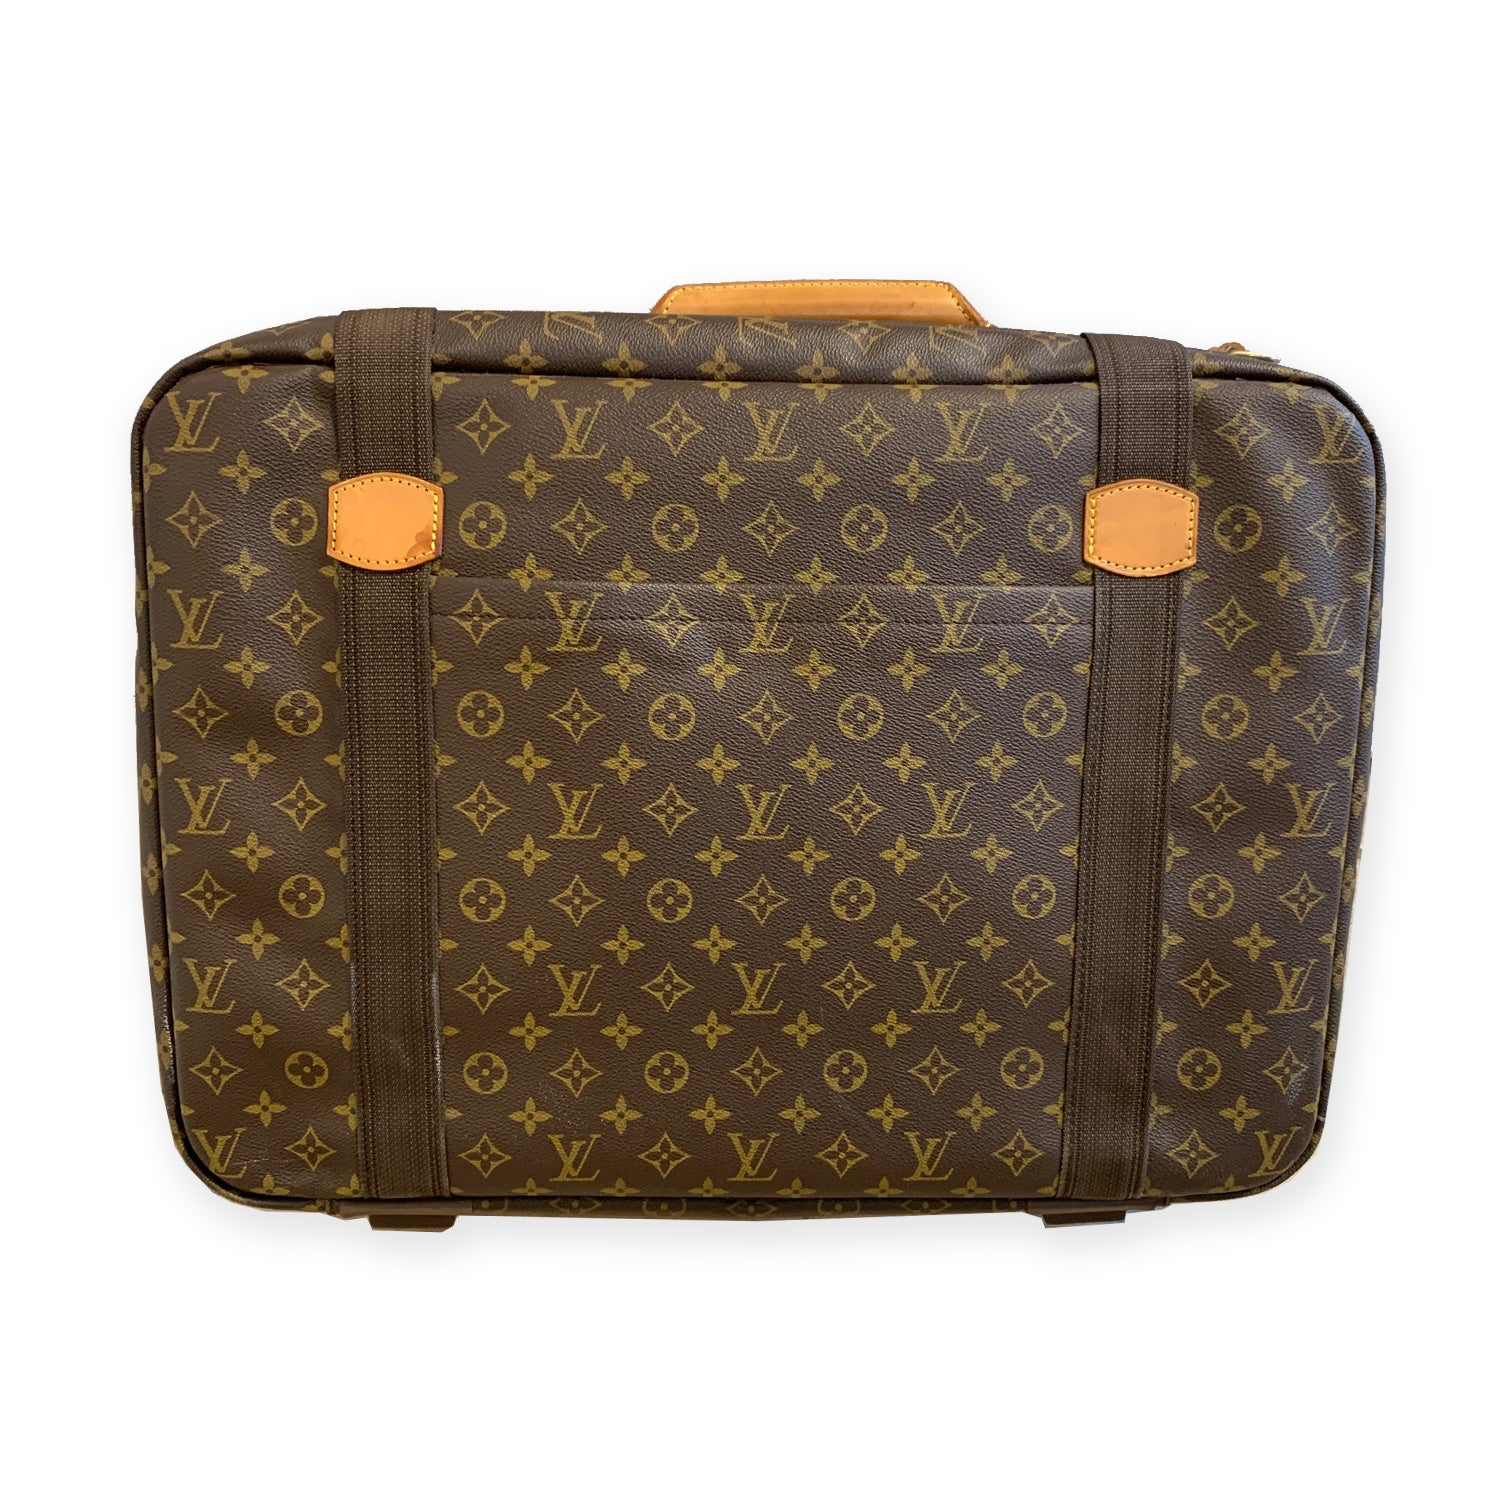 Louis Vuitton Check-In Monogram Luggage